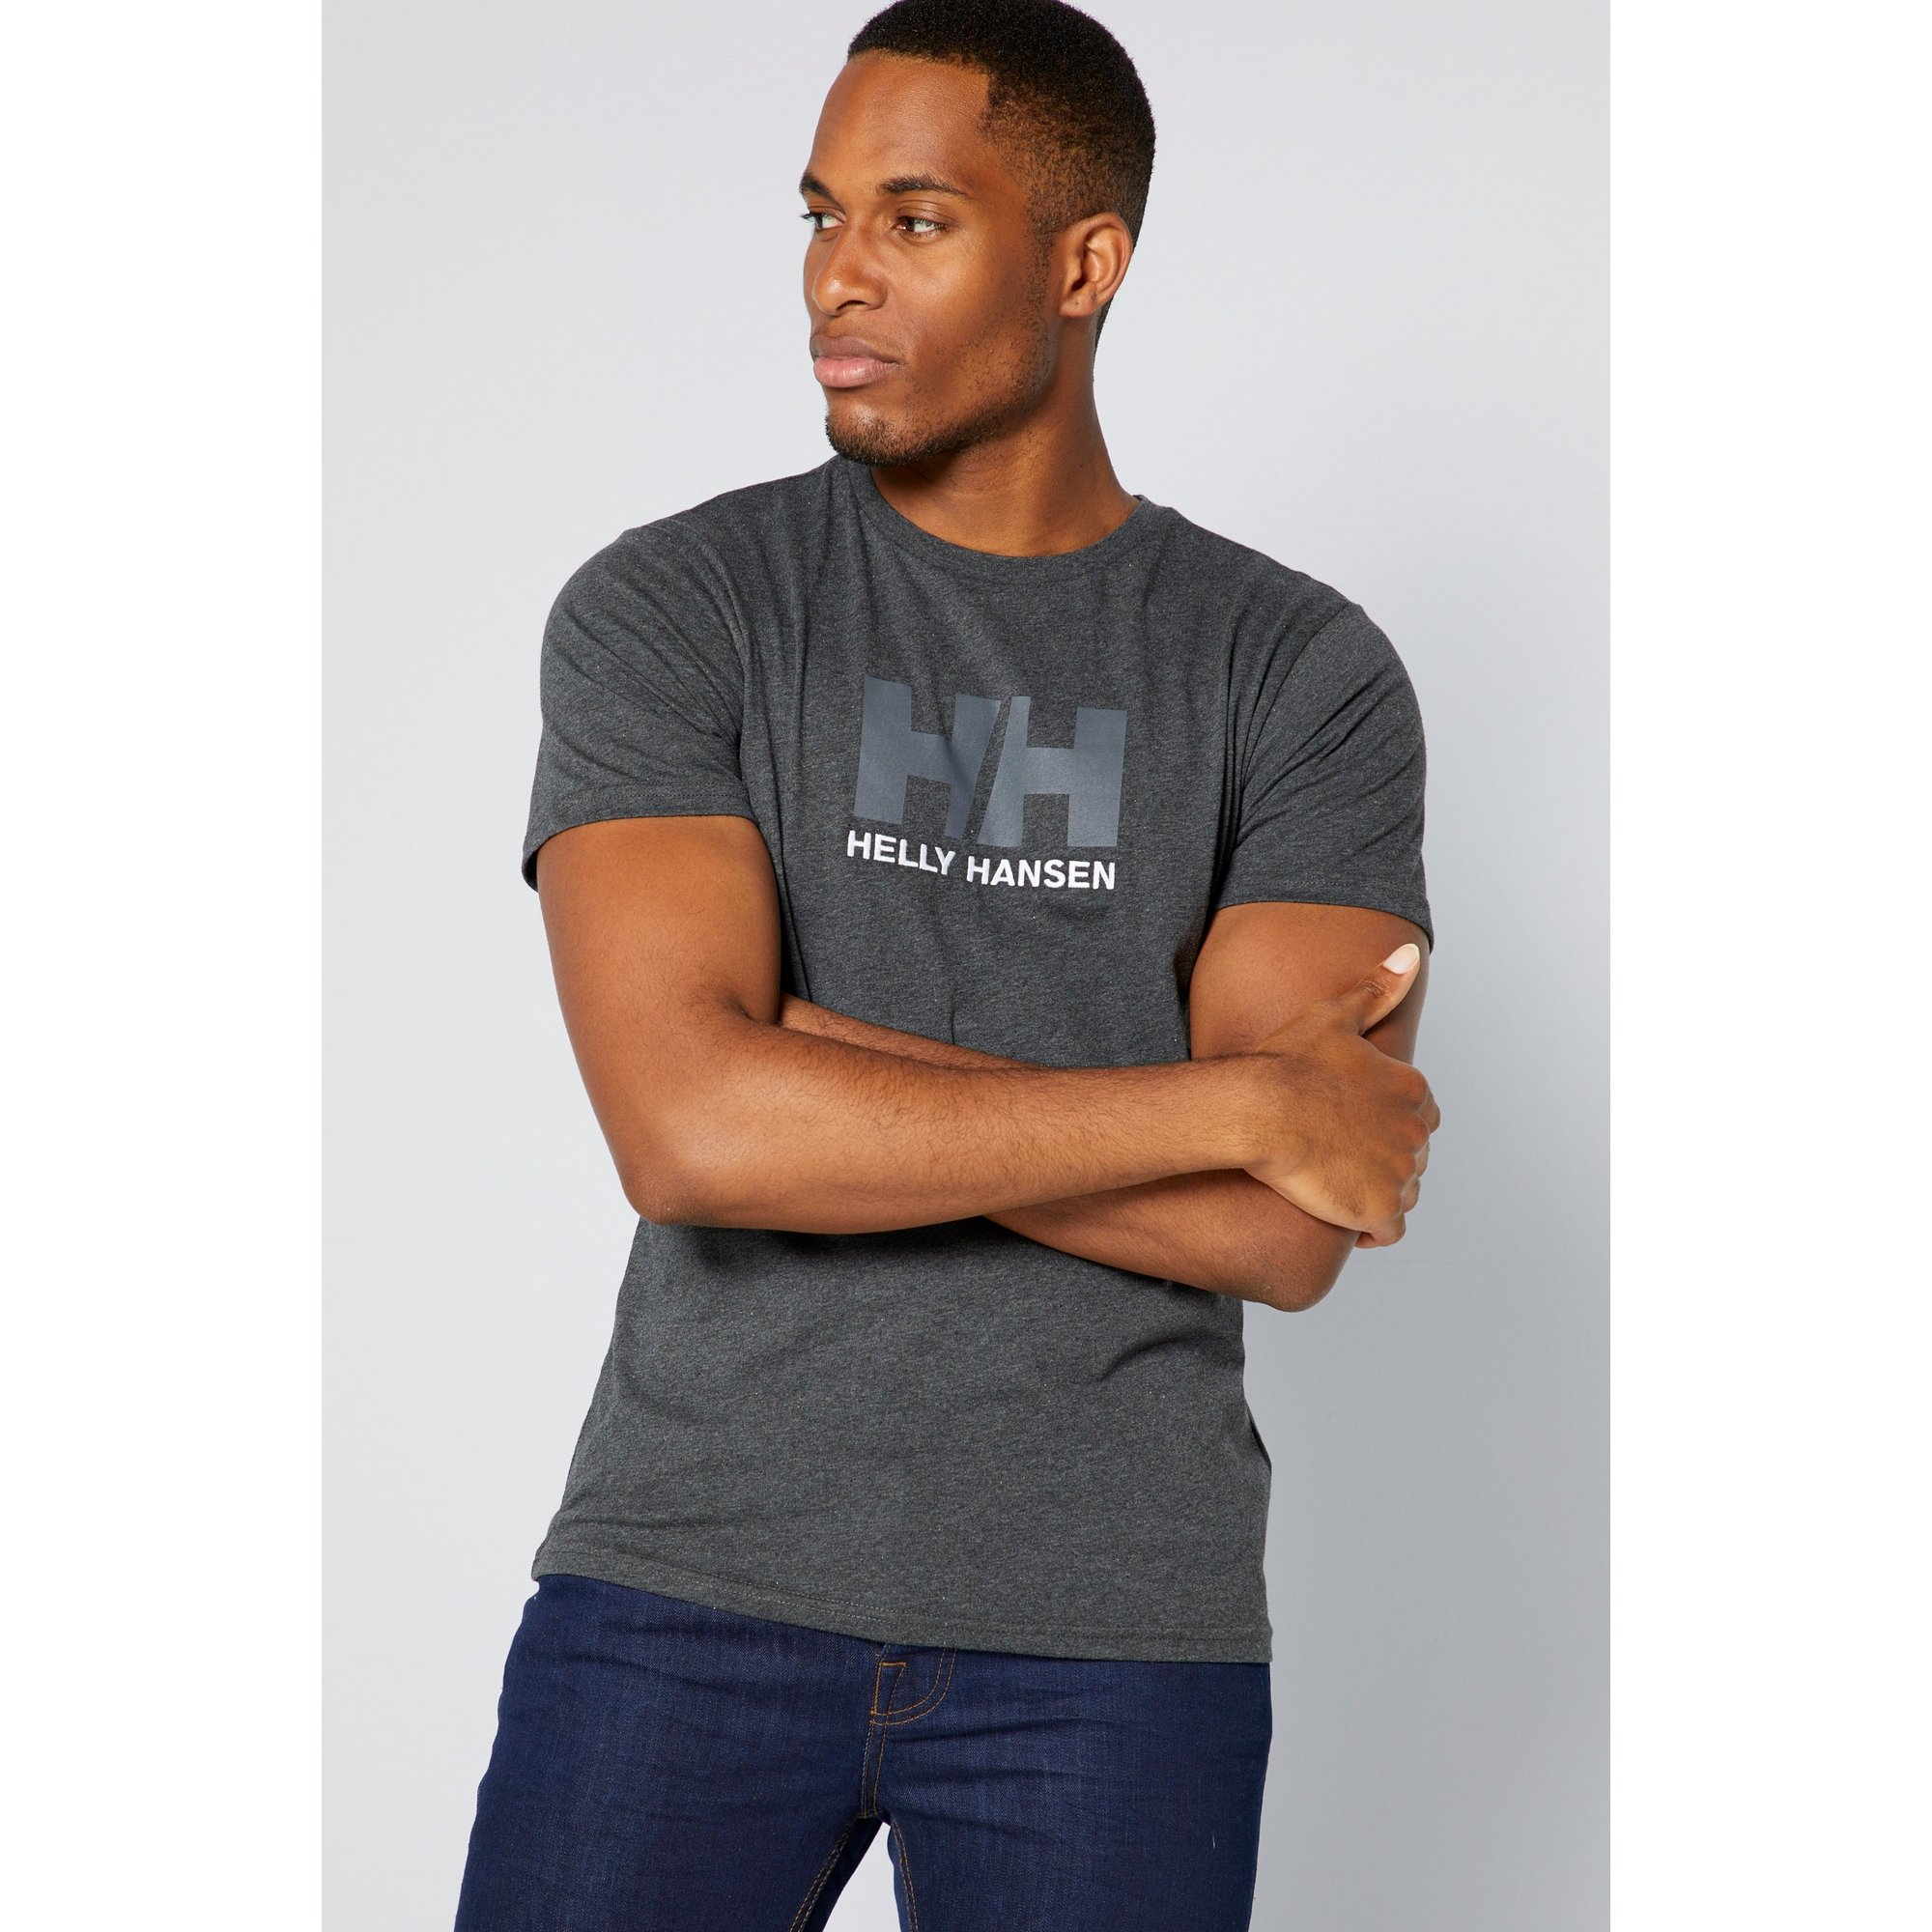 Image of Helly Hansen Logo T-Shirt